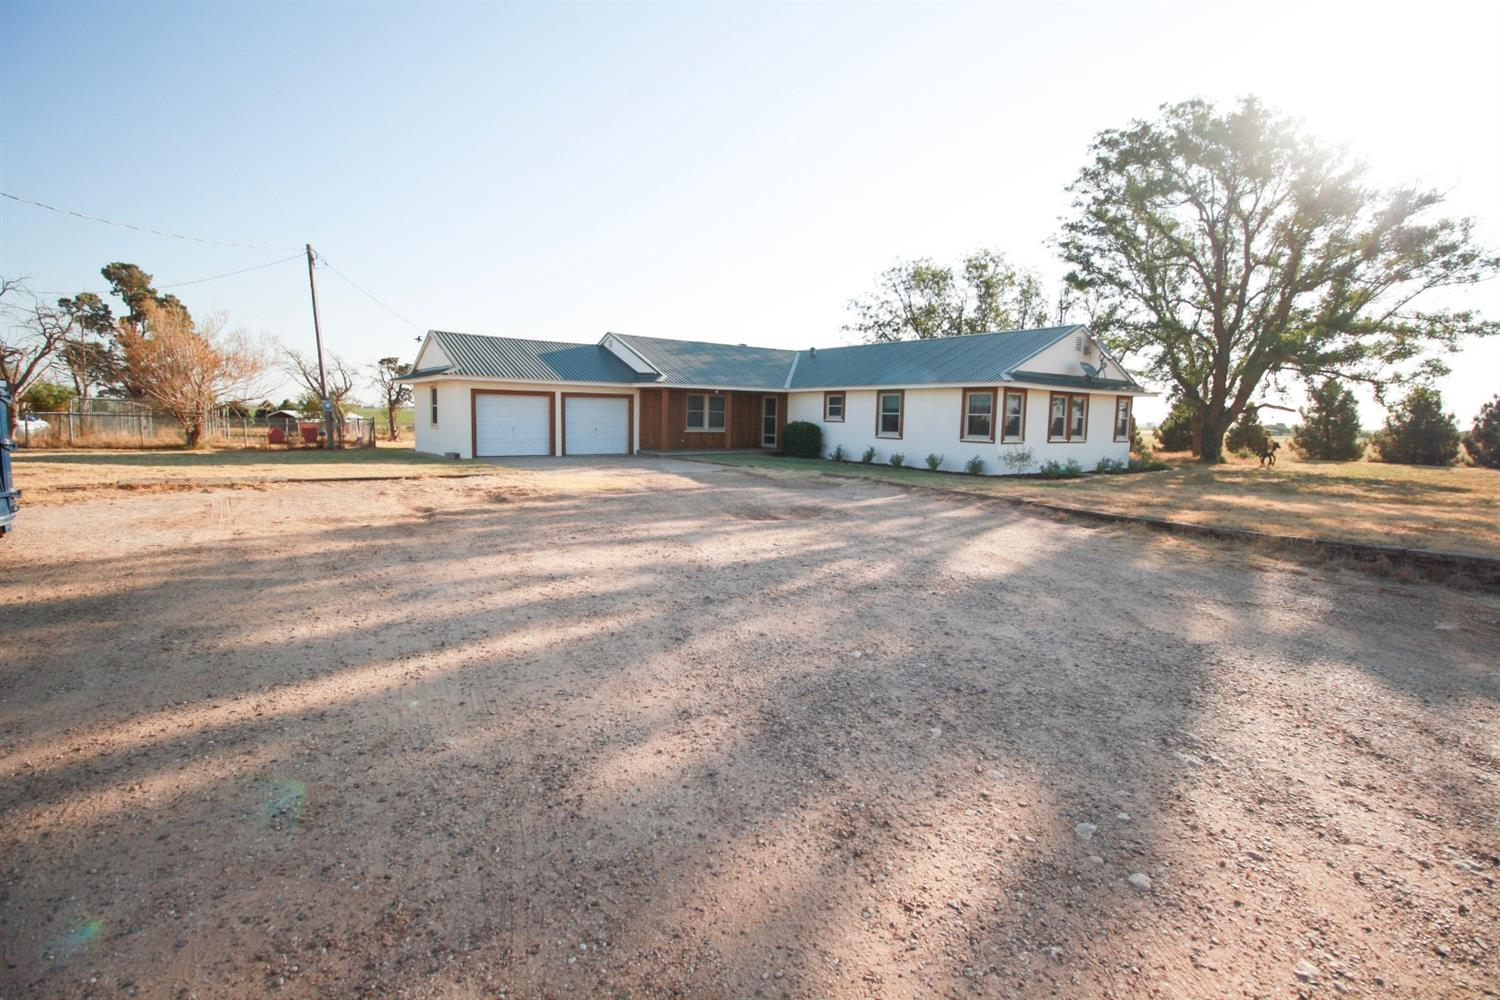 Adorable farmhouse on approx. 11 acres in Lubbock Cooper School District!  4/2/2 with updated master bath, guest bath, kitchen counter-tops, tile back-splash, sink, new dishwasher, metal roof, hardwood floors just refinished, double pane windows, well pump & bladder replaced 4/19 & AC unit was replaced in 2016.  2 barns for stock-show animals & livestock.  All of the pens & panels will convey!  A little piece of paradise...You have to see for yourself, photos just do not do it justice!